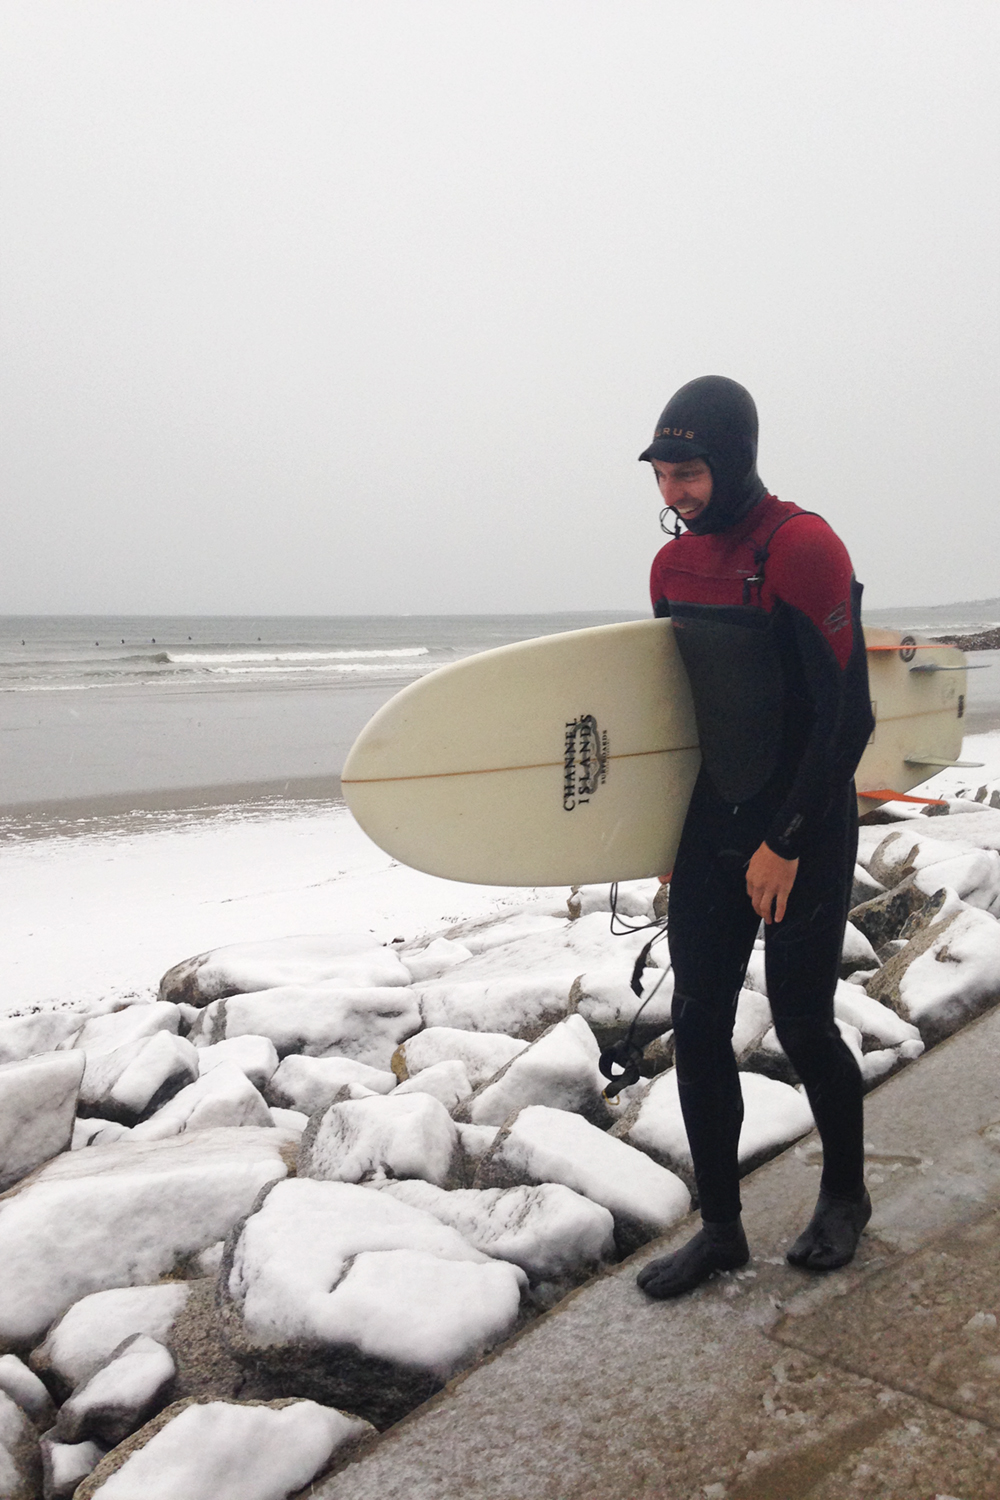 With the storm came wind-swell that created perfect little waves. Adam was beyond stoked to surf in the snow! Air temp was 35 and the water was 55. Burrrr. It was a first for him and will not be the last.